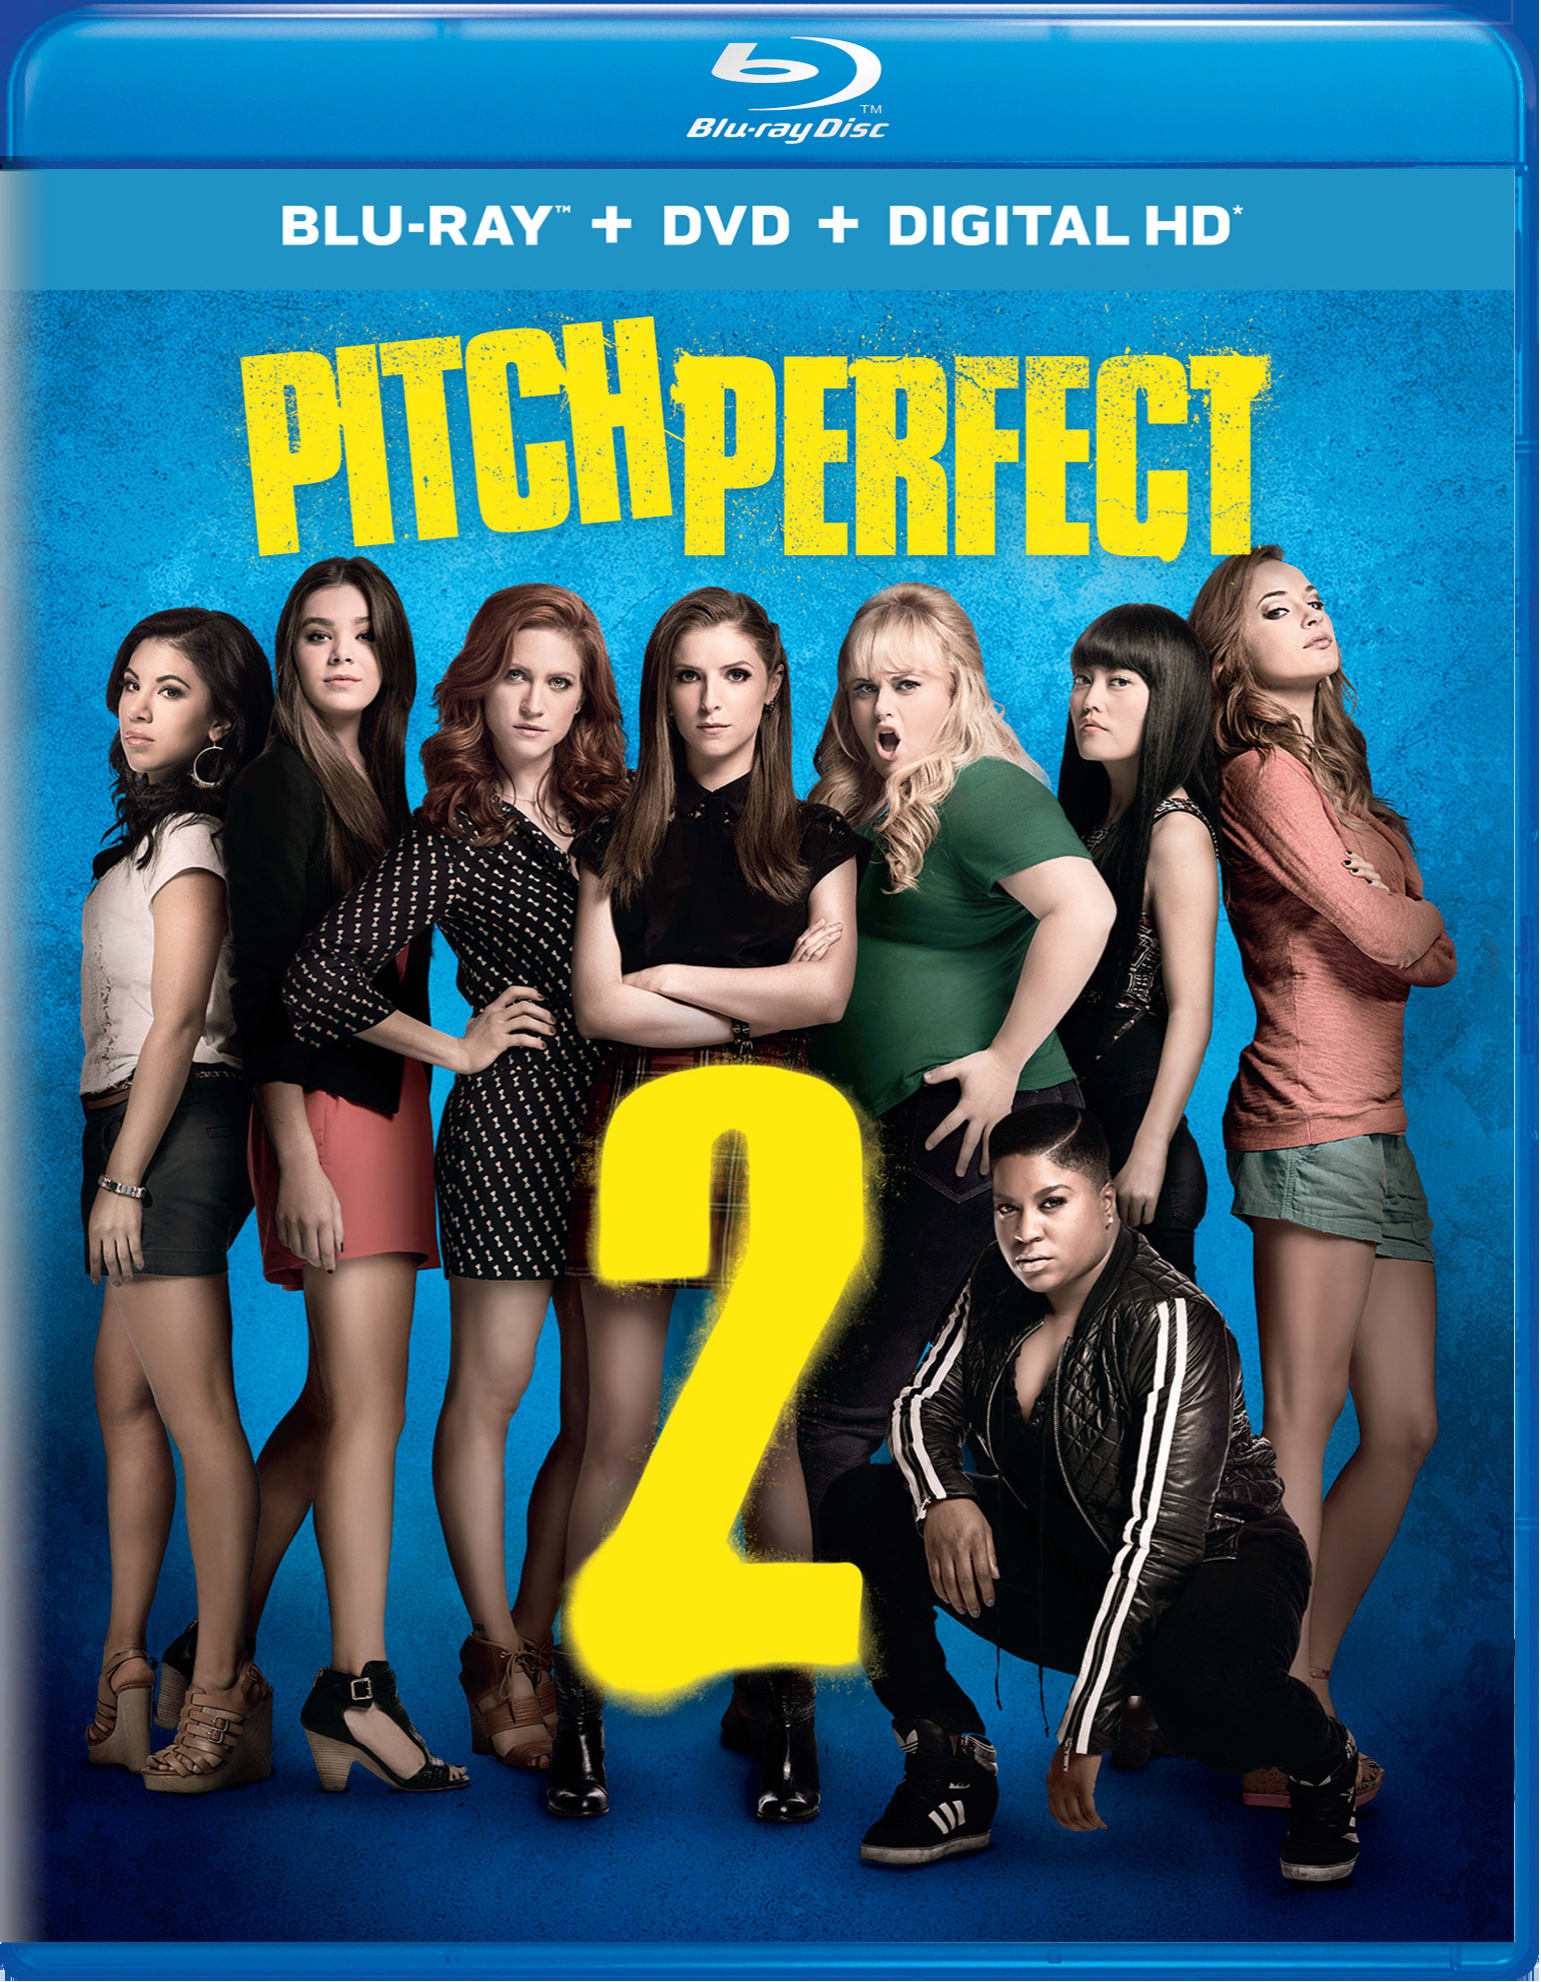 Pitch Perfect 2 (DVD + Digital) [Blu-ray]